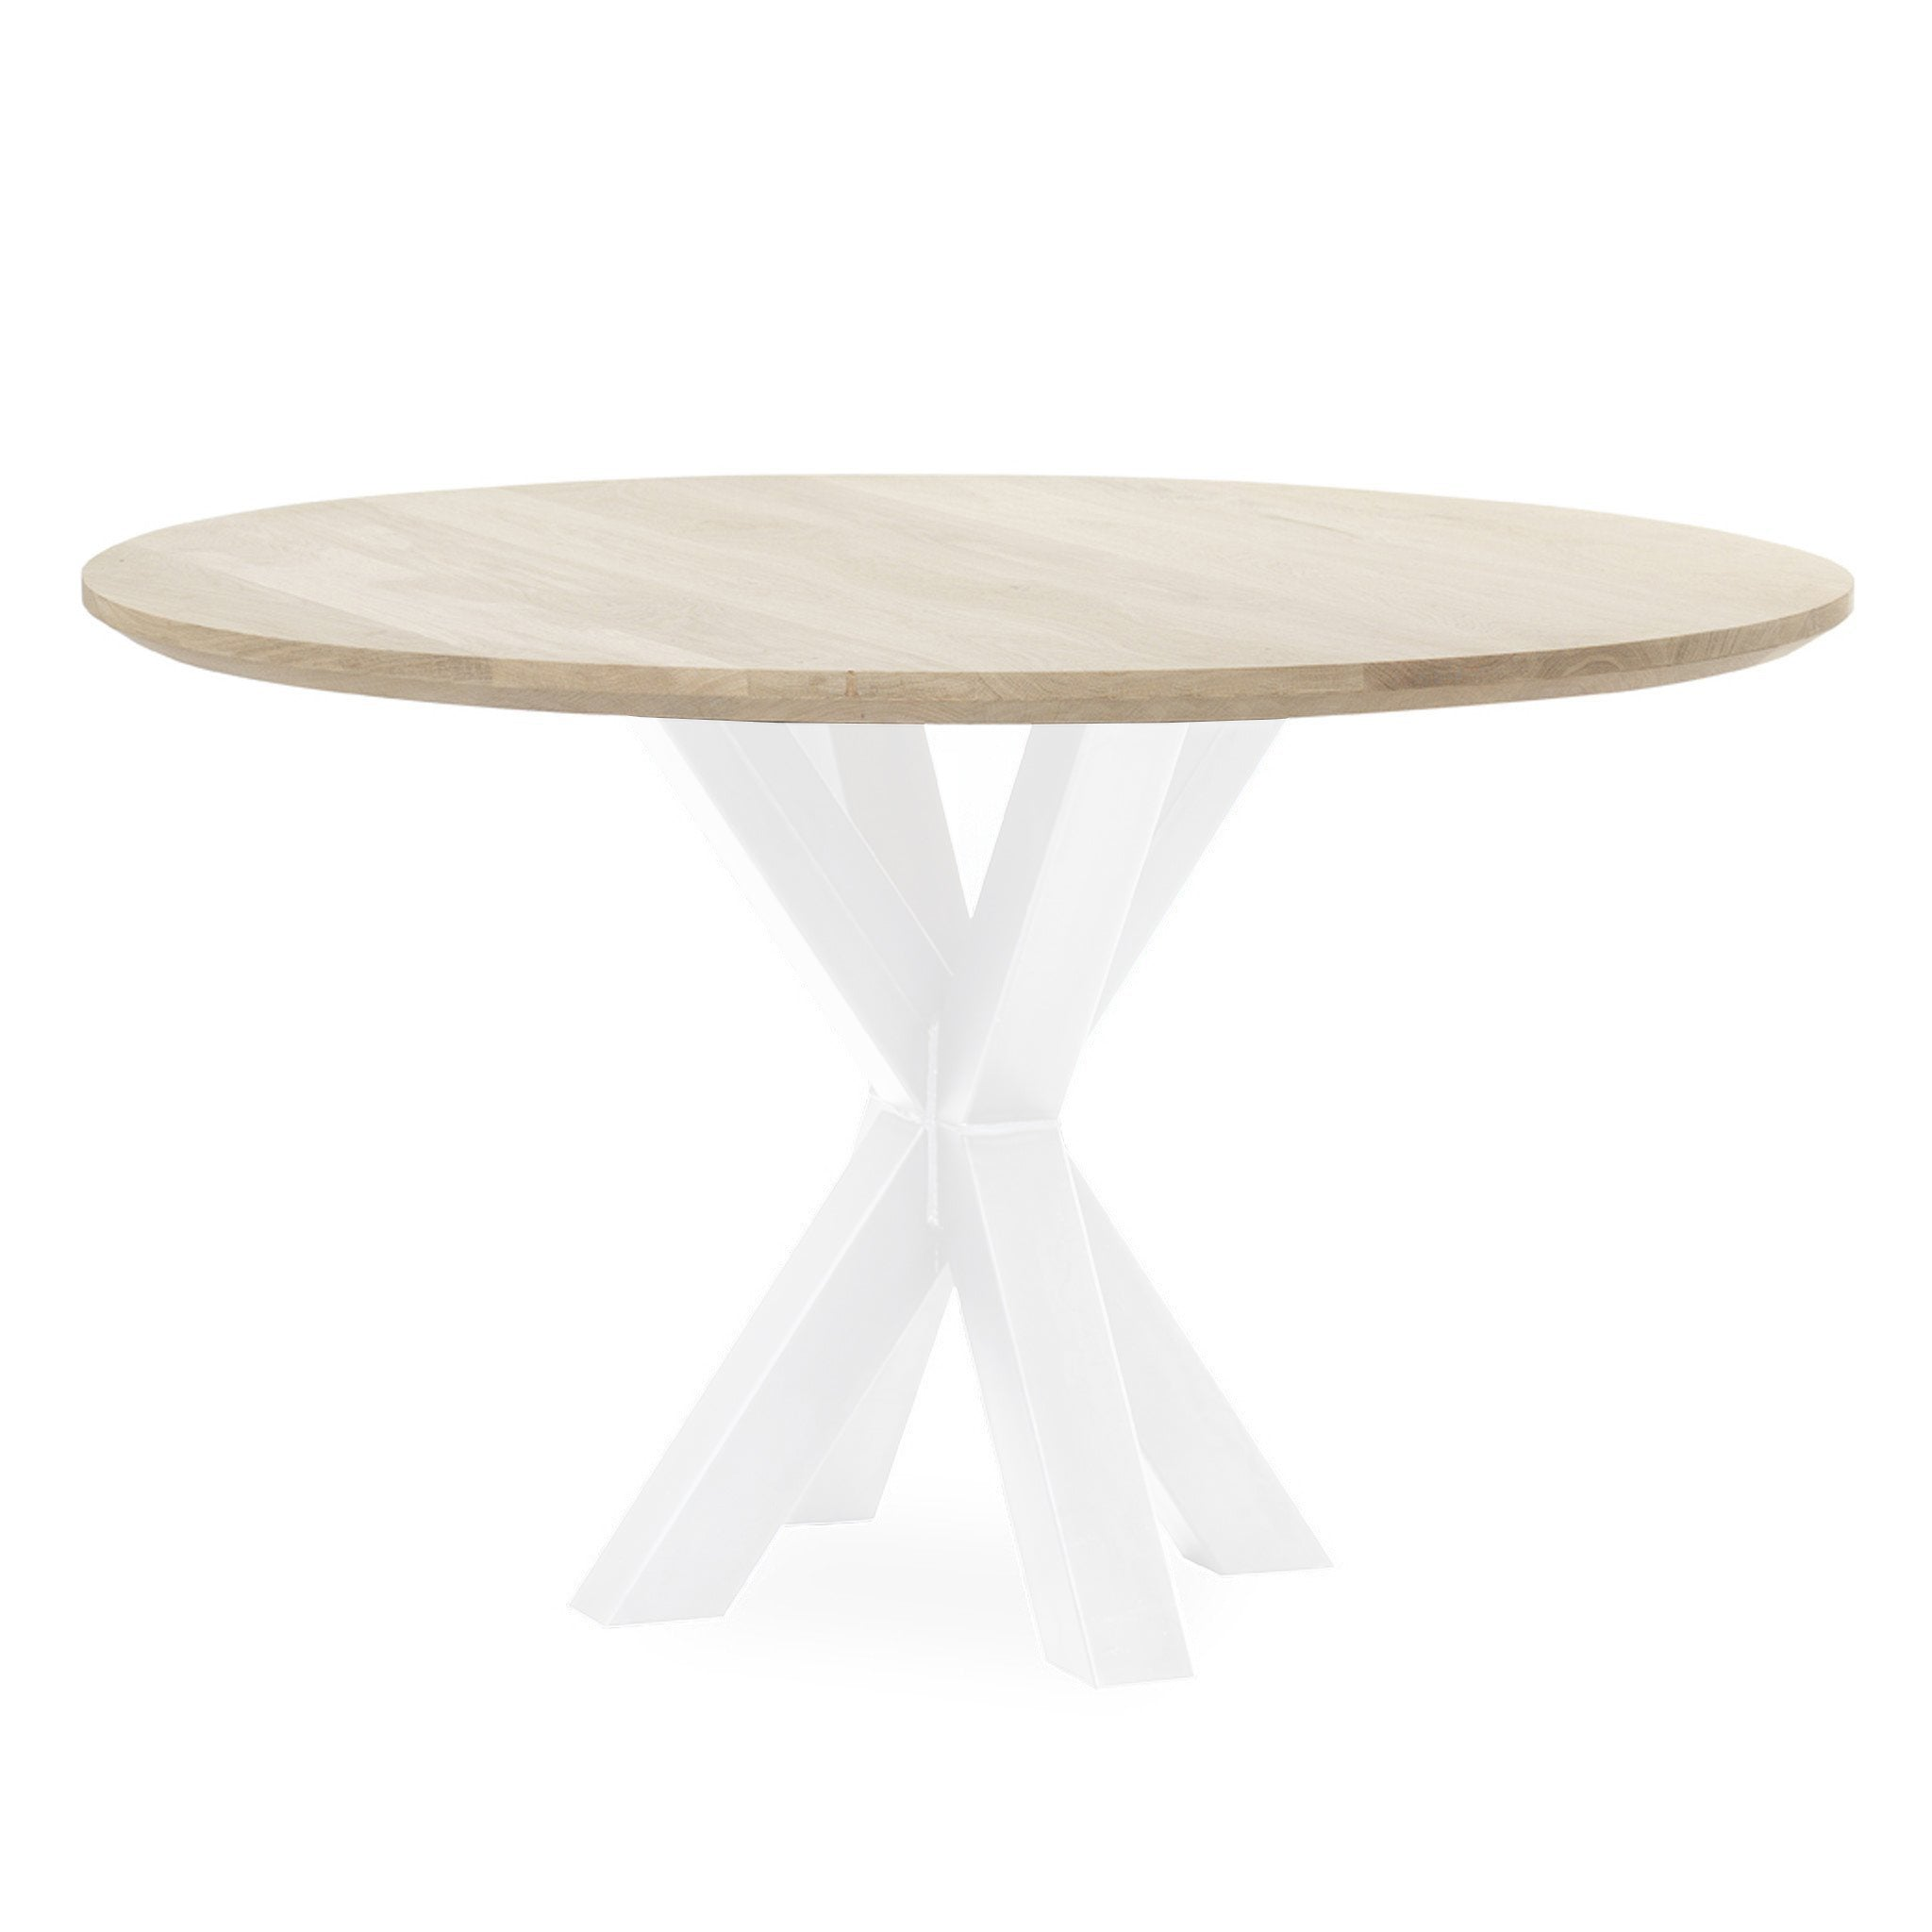 Eettafel Rond 120 Wit.Tafel Superstar Eiken Spinpoot Rond Wit Woodville